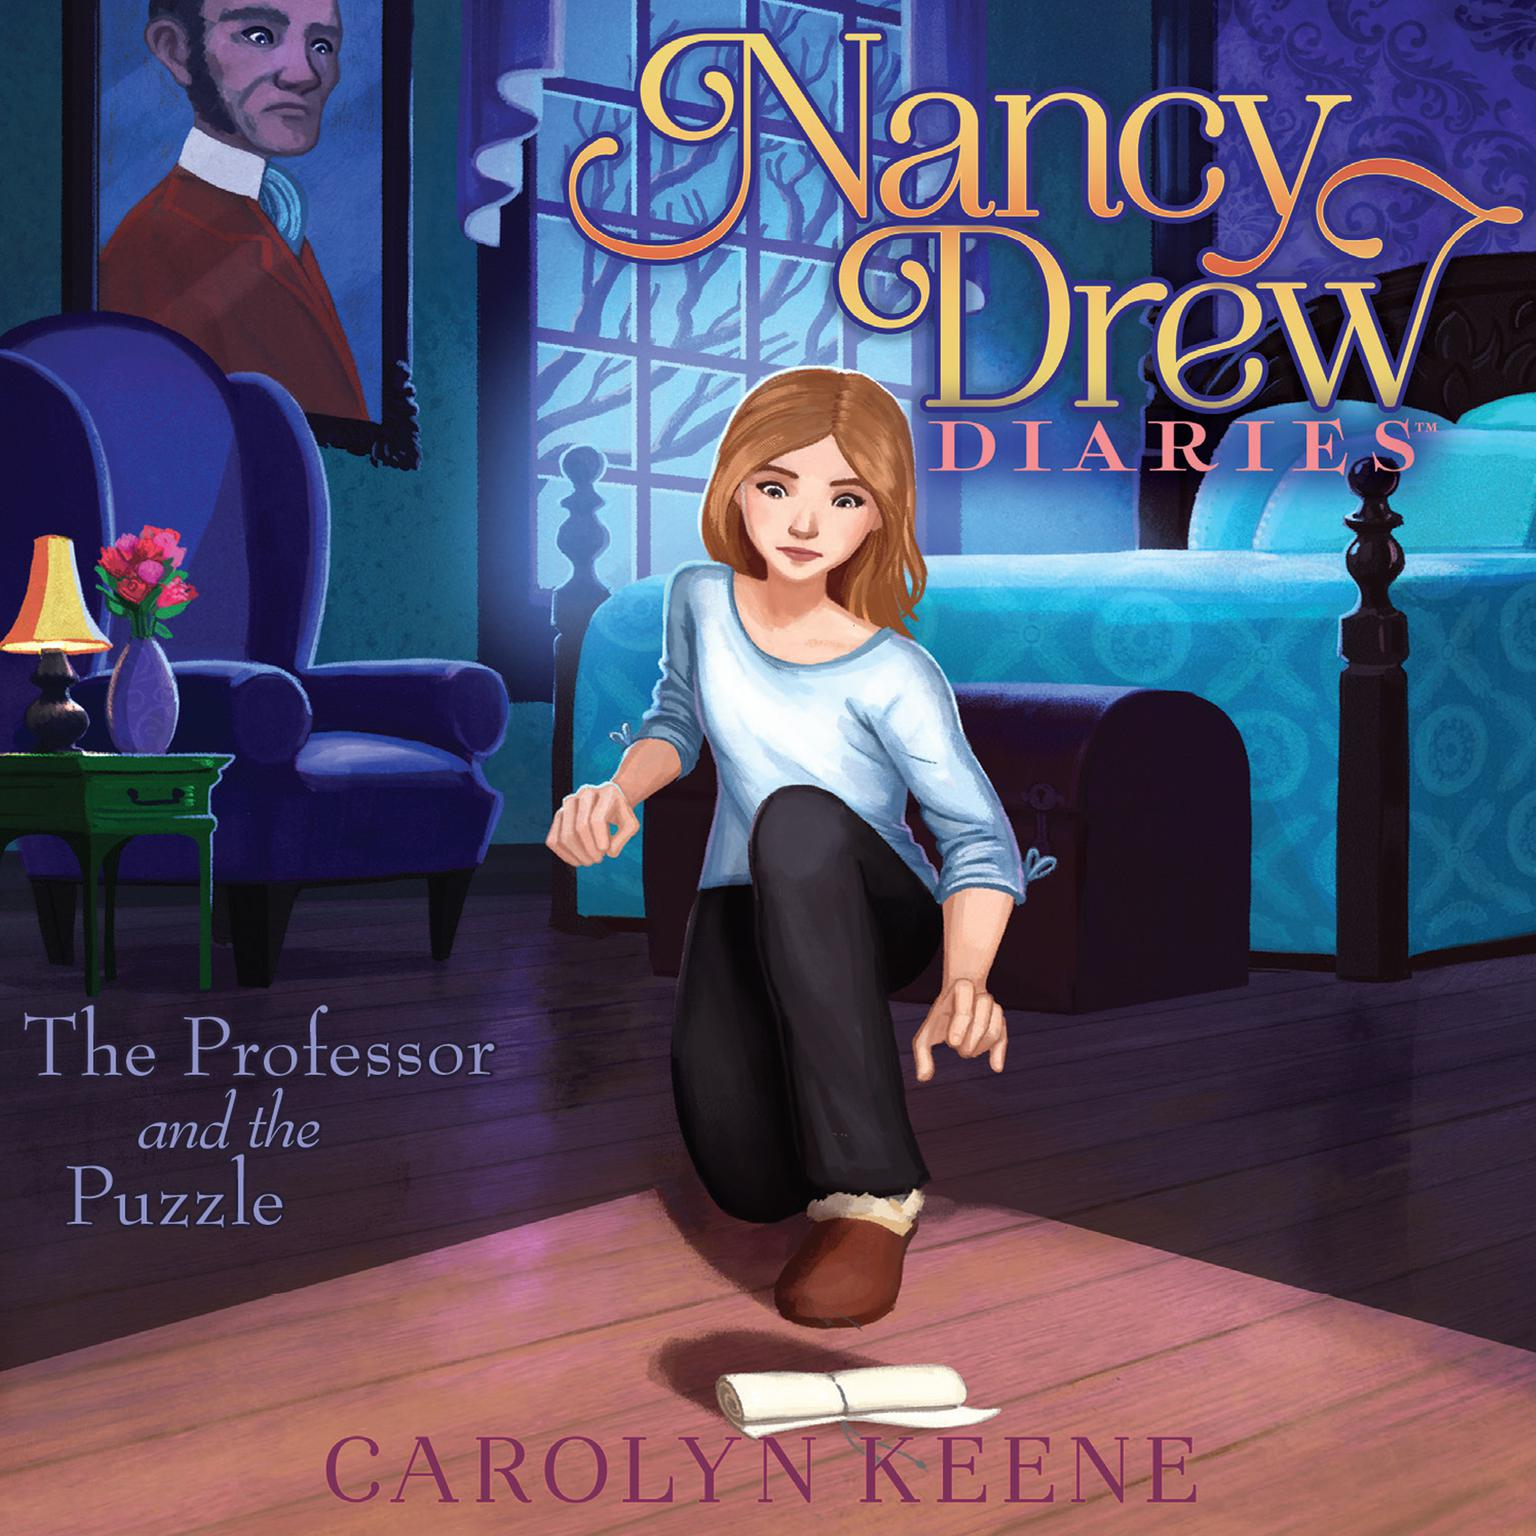 Printable The Professor and the Puzzle Audiobook Cover Art